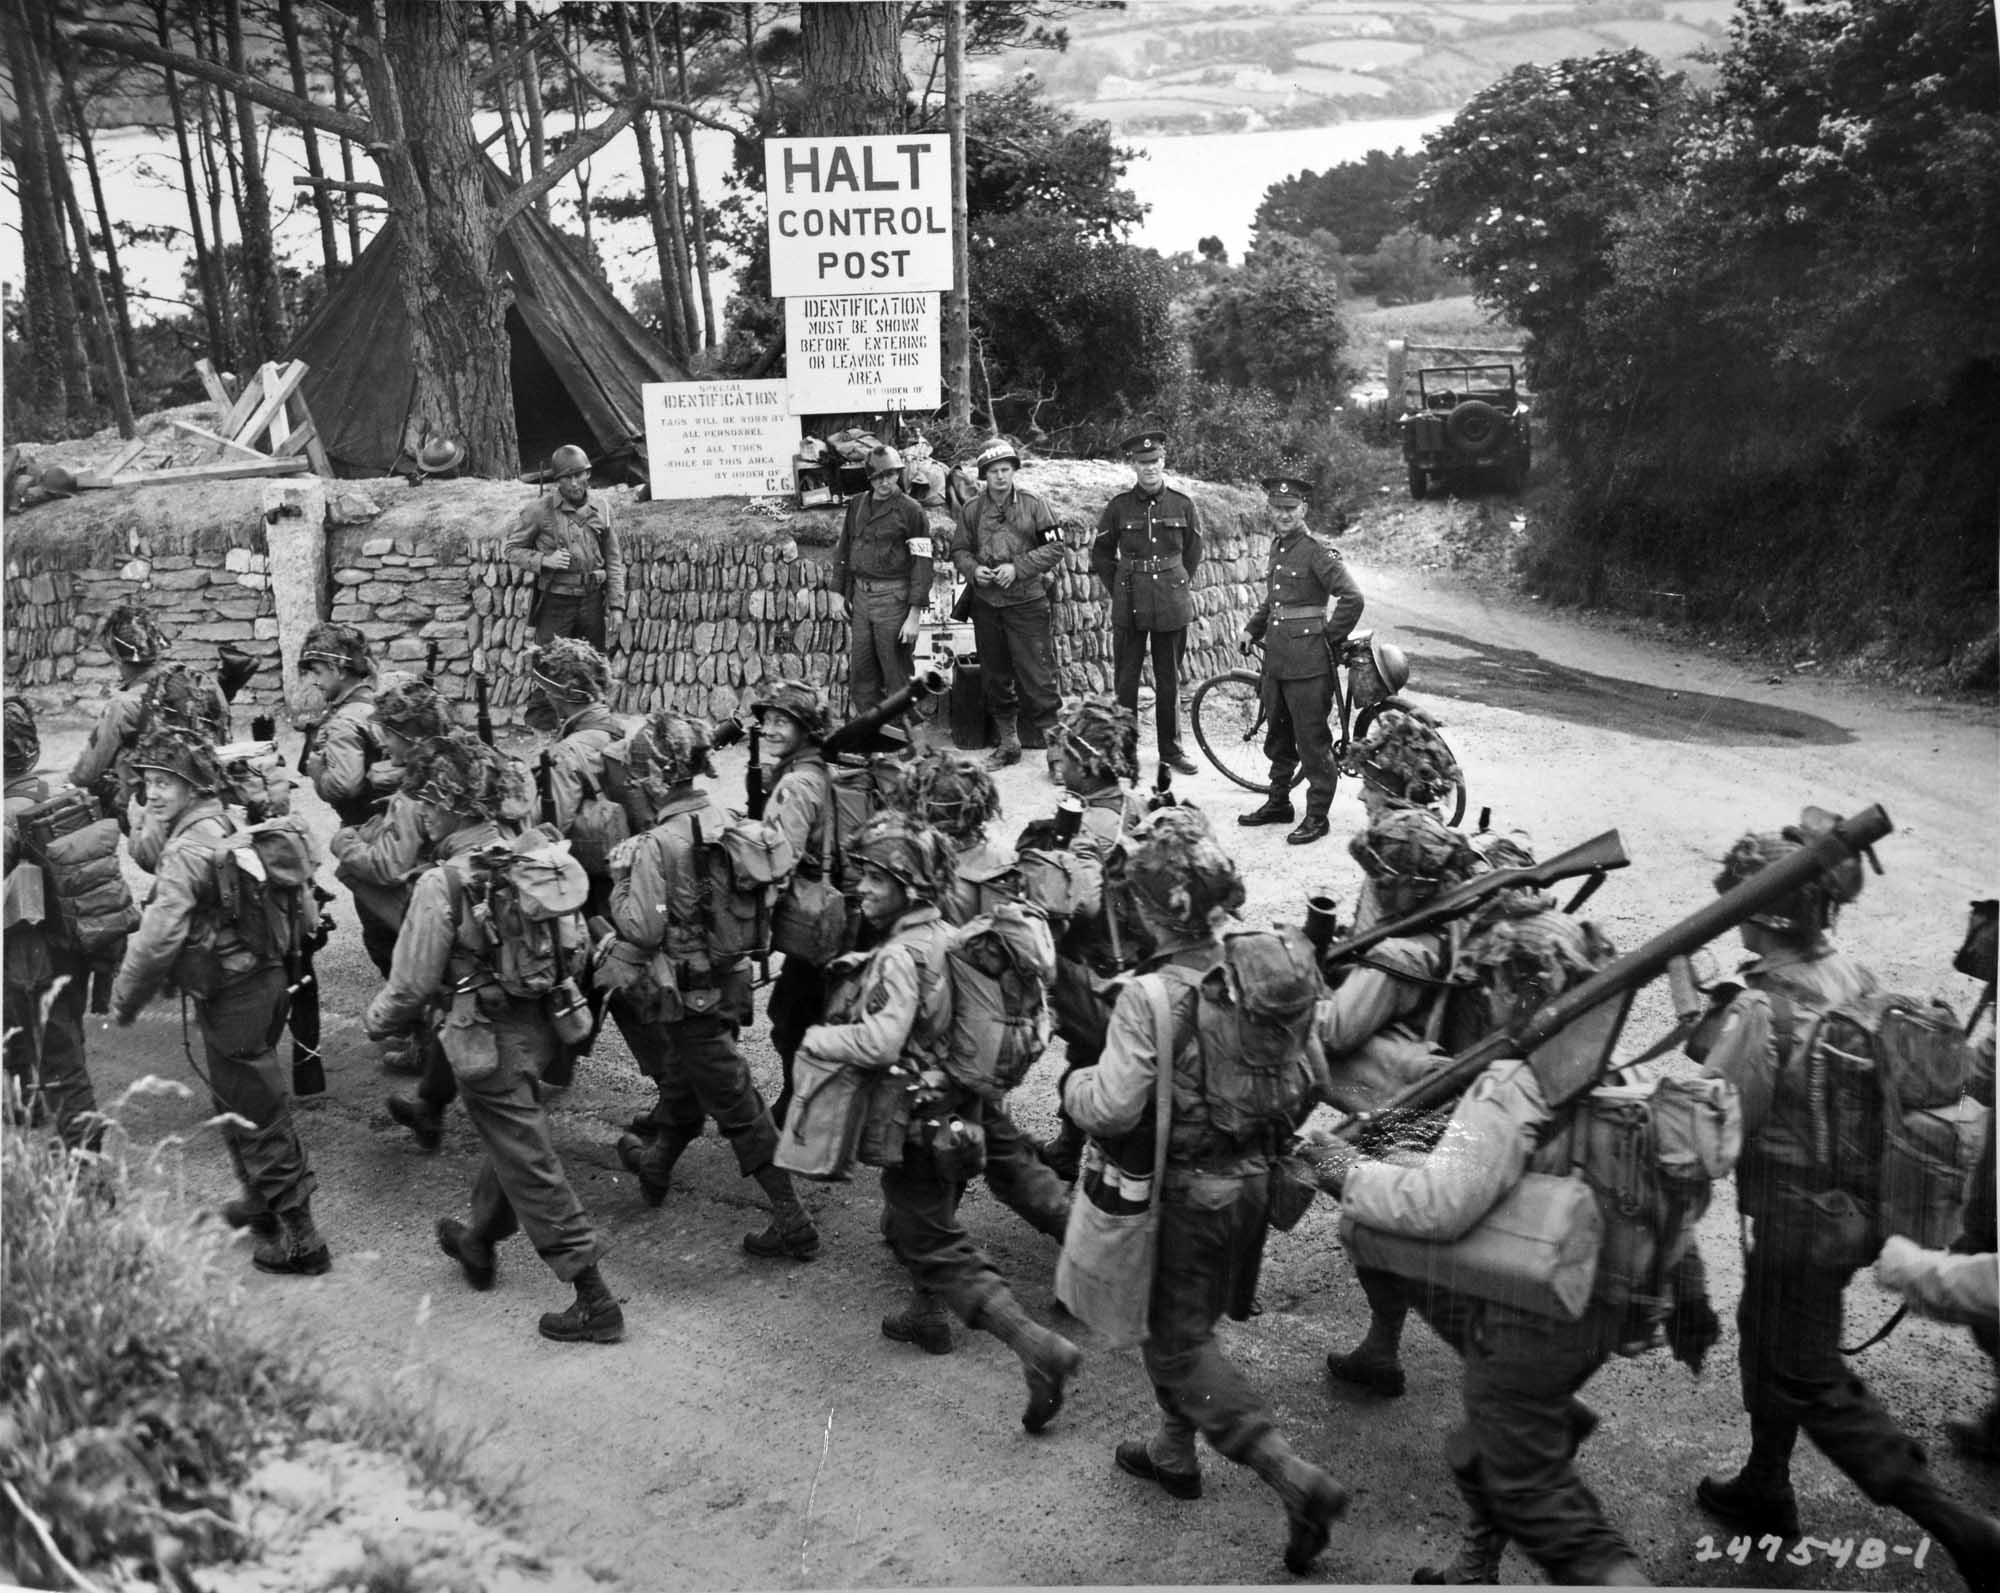 a black and white photo of US soldiers marching down a country lane past a checkpoint with sandbags and military police